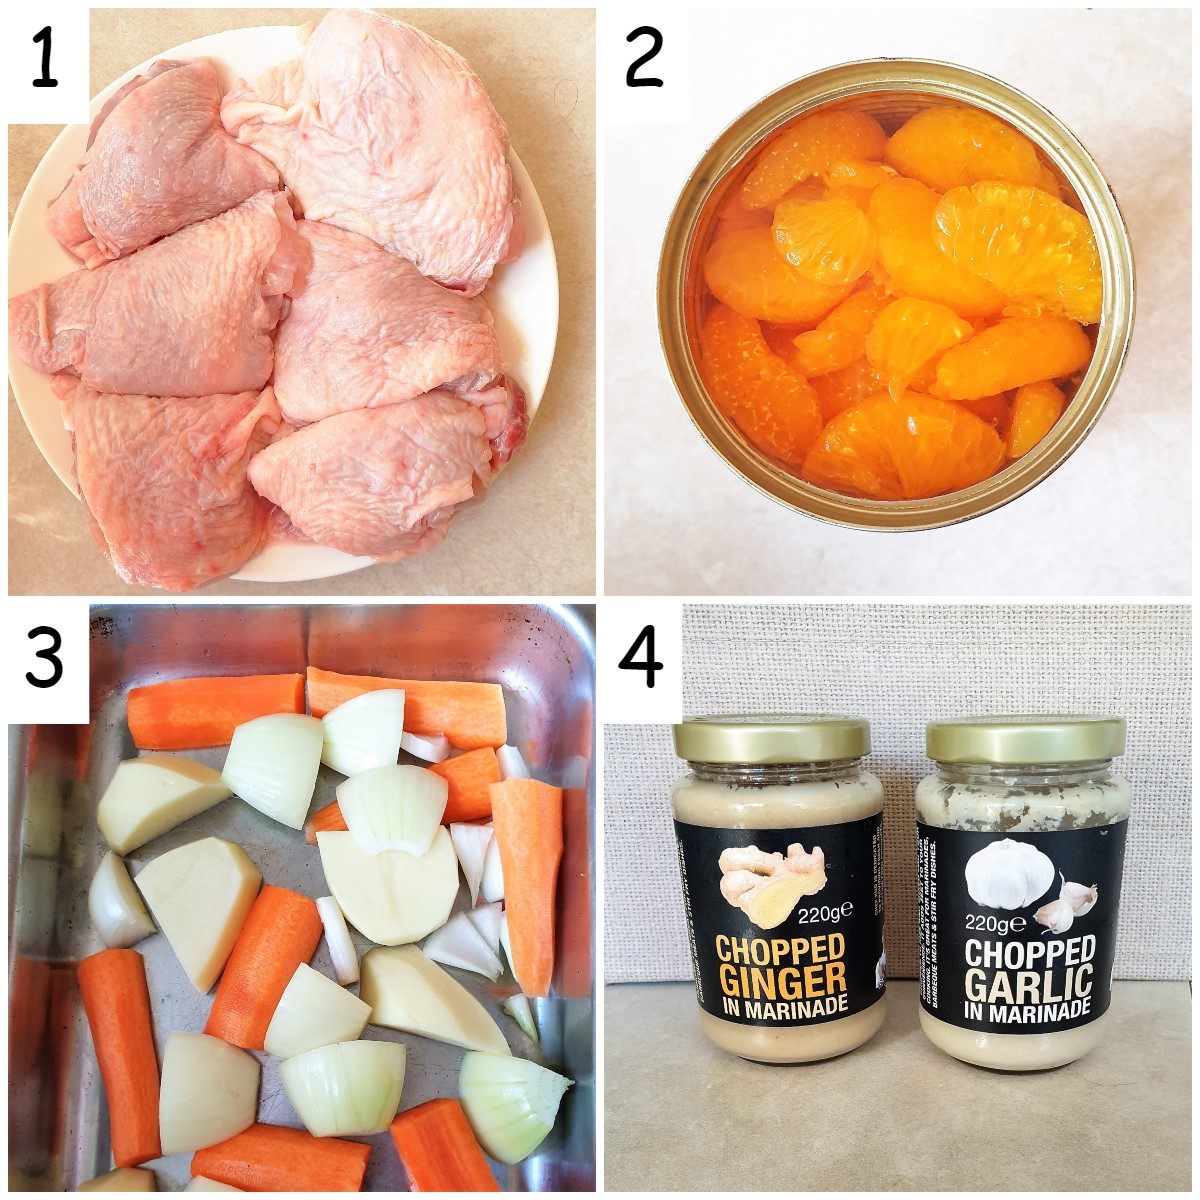 4 images showing the ingredients for orange chicken.  Chicken thighs, mandarin oranges, carrots and onions and ginger and garlic.